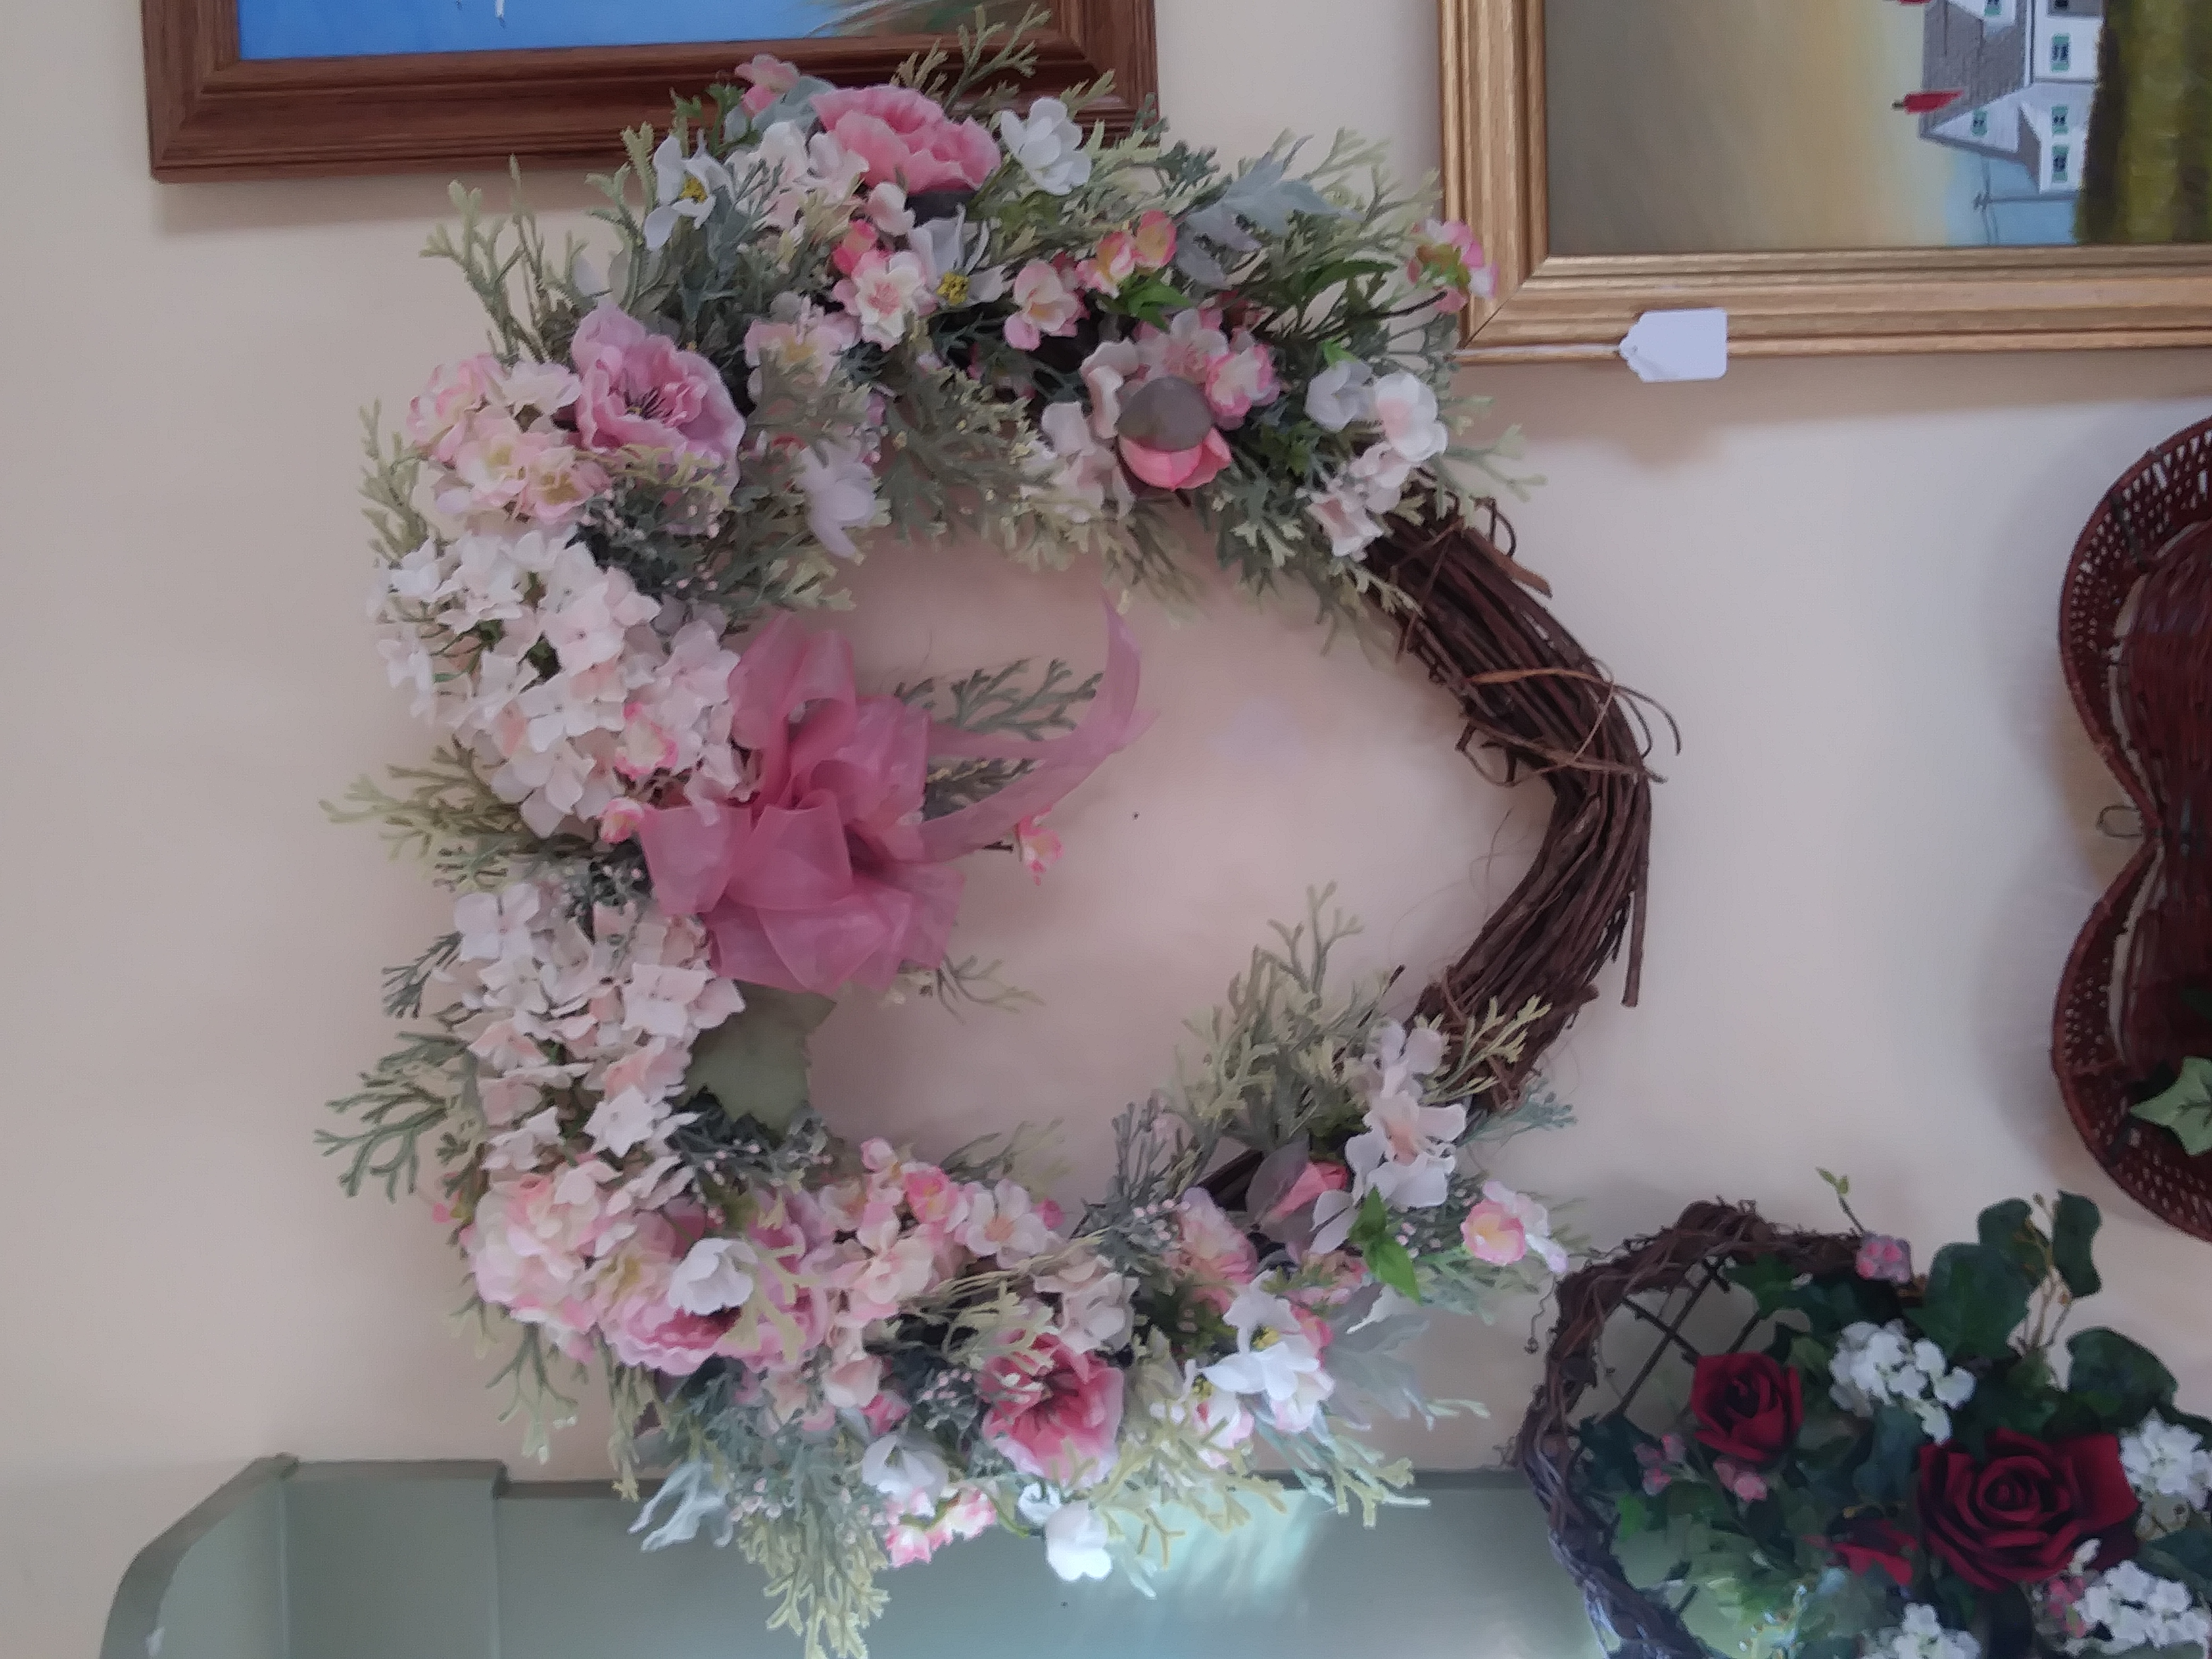 Heart wreath-pink